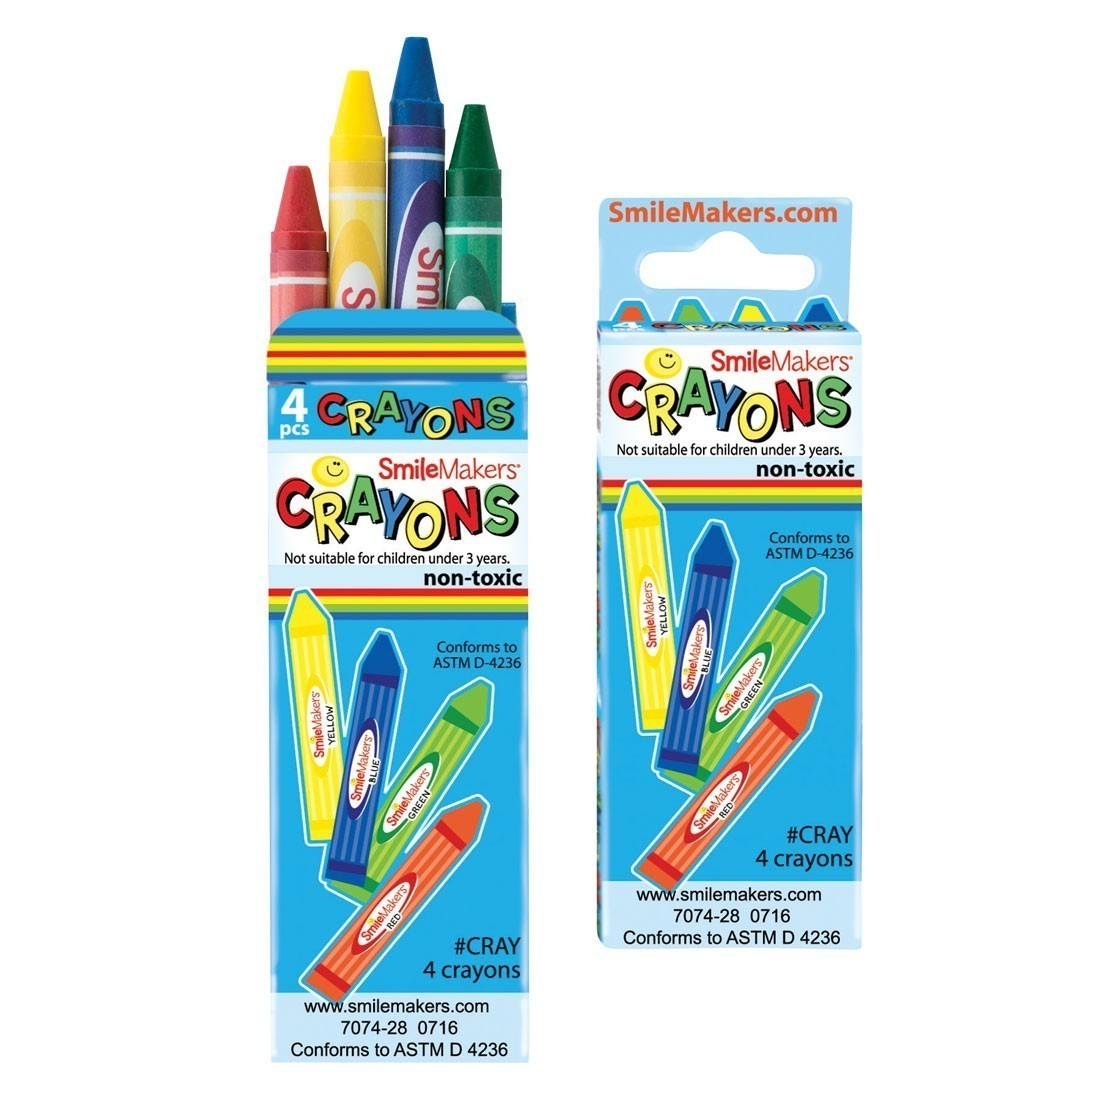 SmileMakers Crayons [image]